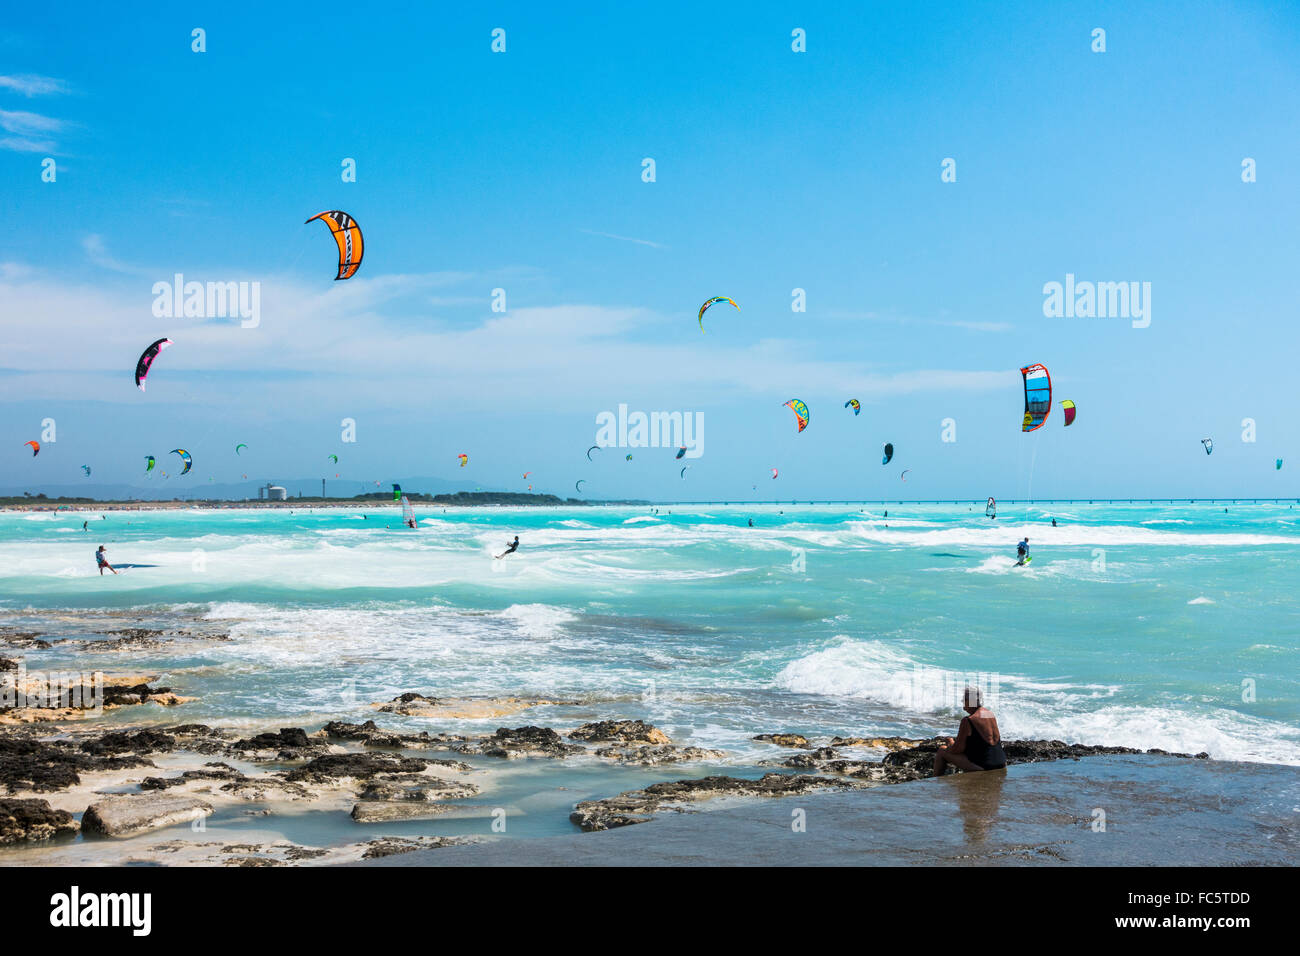 Kitesurfers on the tropical beach in Rosignano Solvay in Tuscany, Italy. The turqoise waters comes from the white - Stock Image